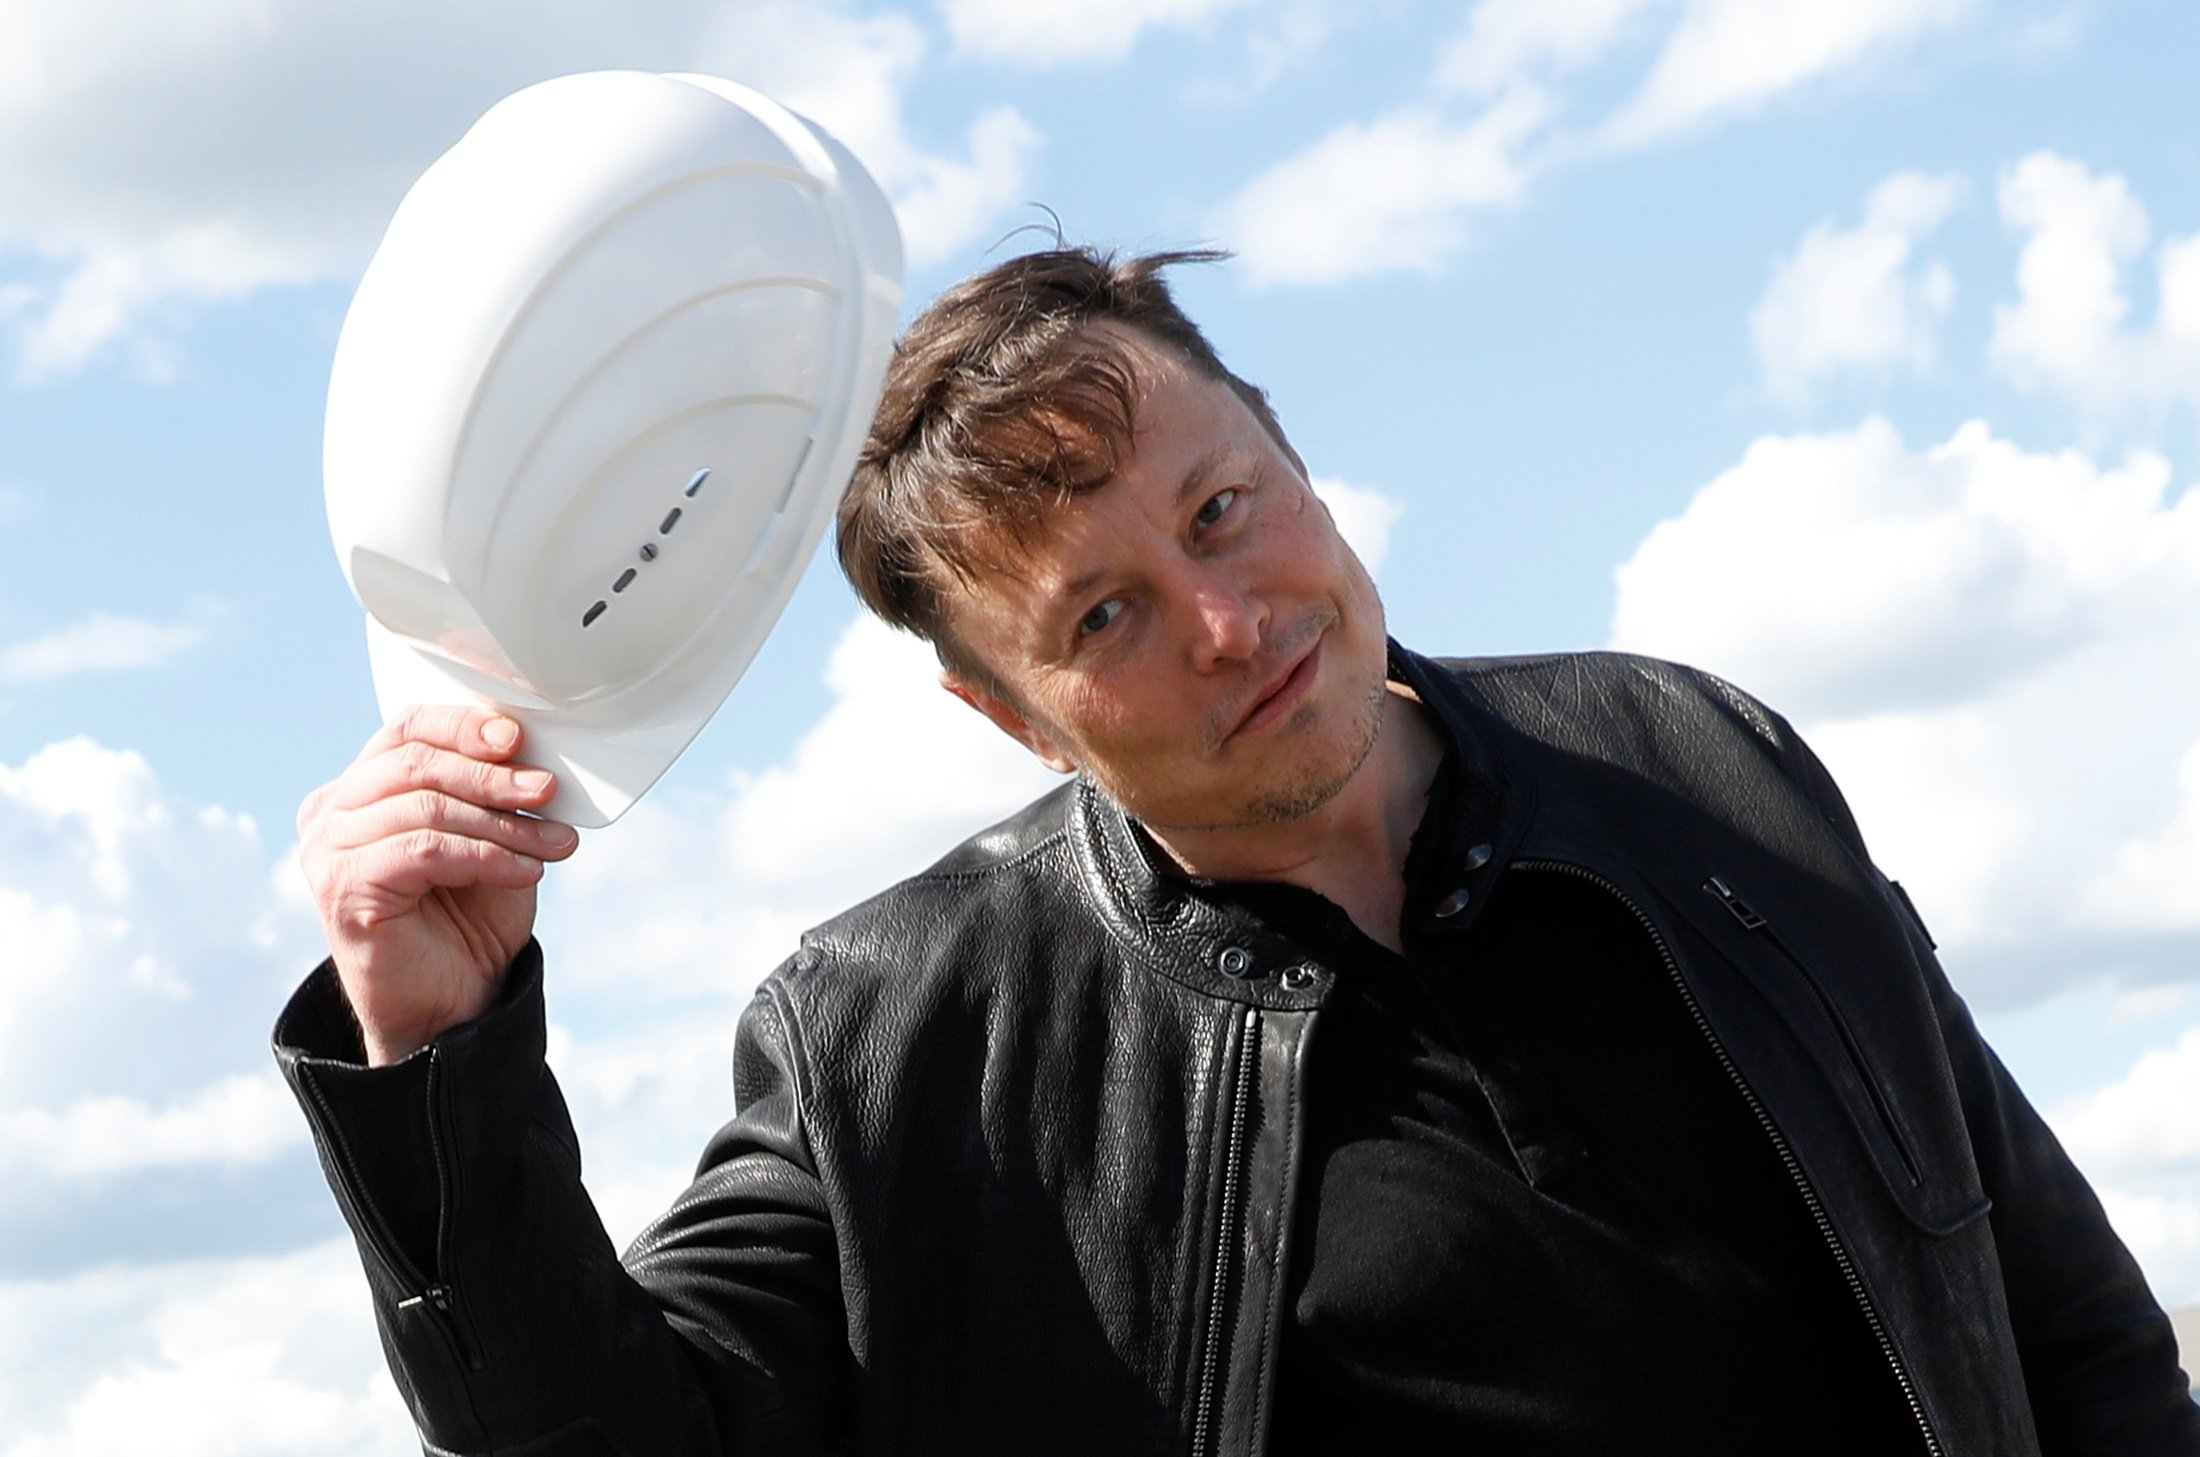 SpaceX founder and Tesla CEO Elon Musk holds a helmet as he visits the construction site of Tesla's gigafactory in Gruenheide, near Berlin, Germany, May 17, 2021. (REUTERS)